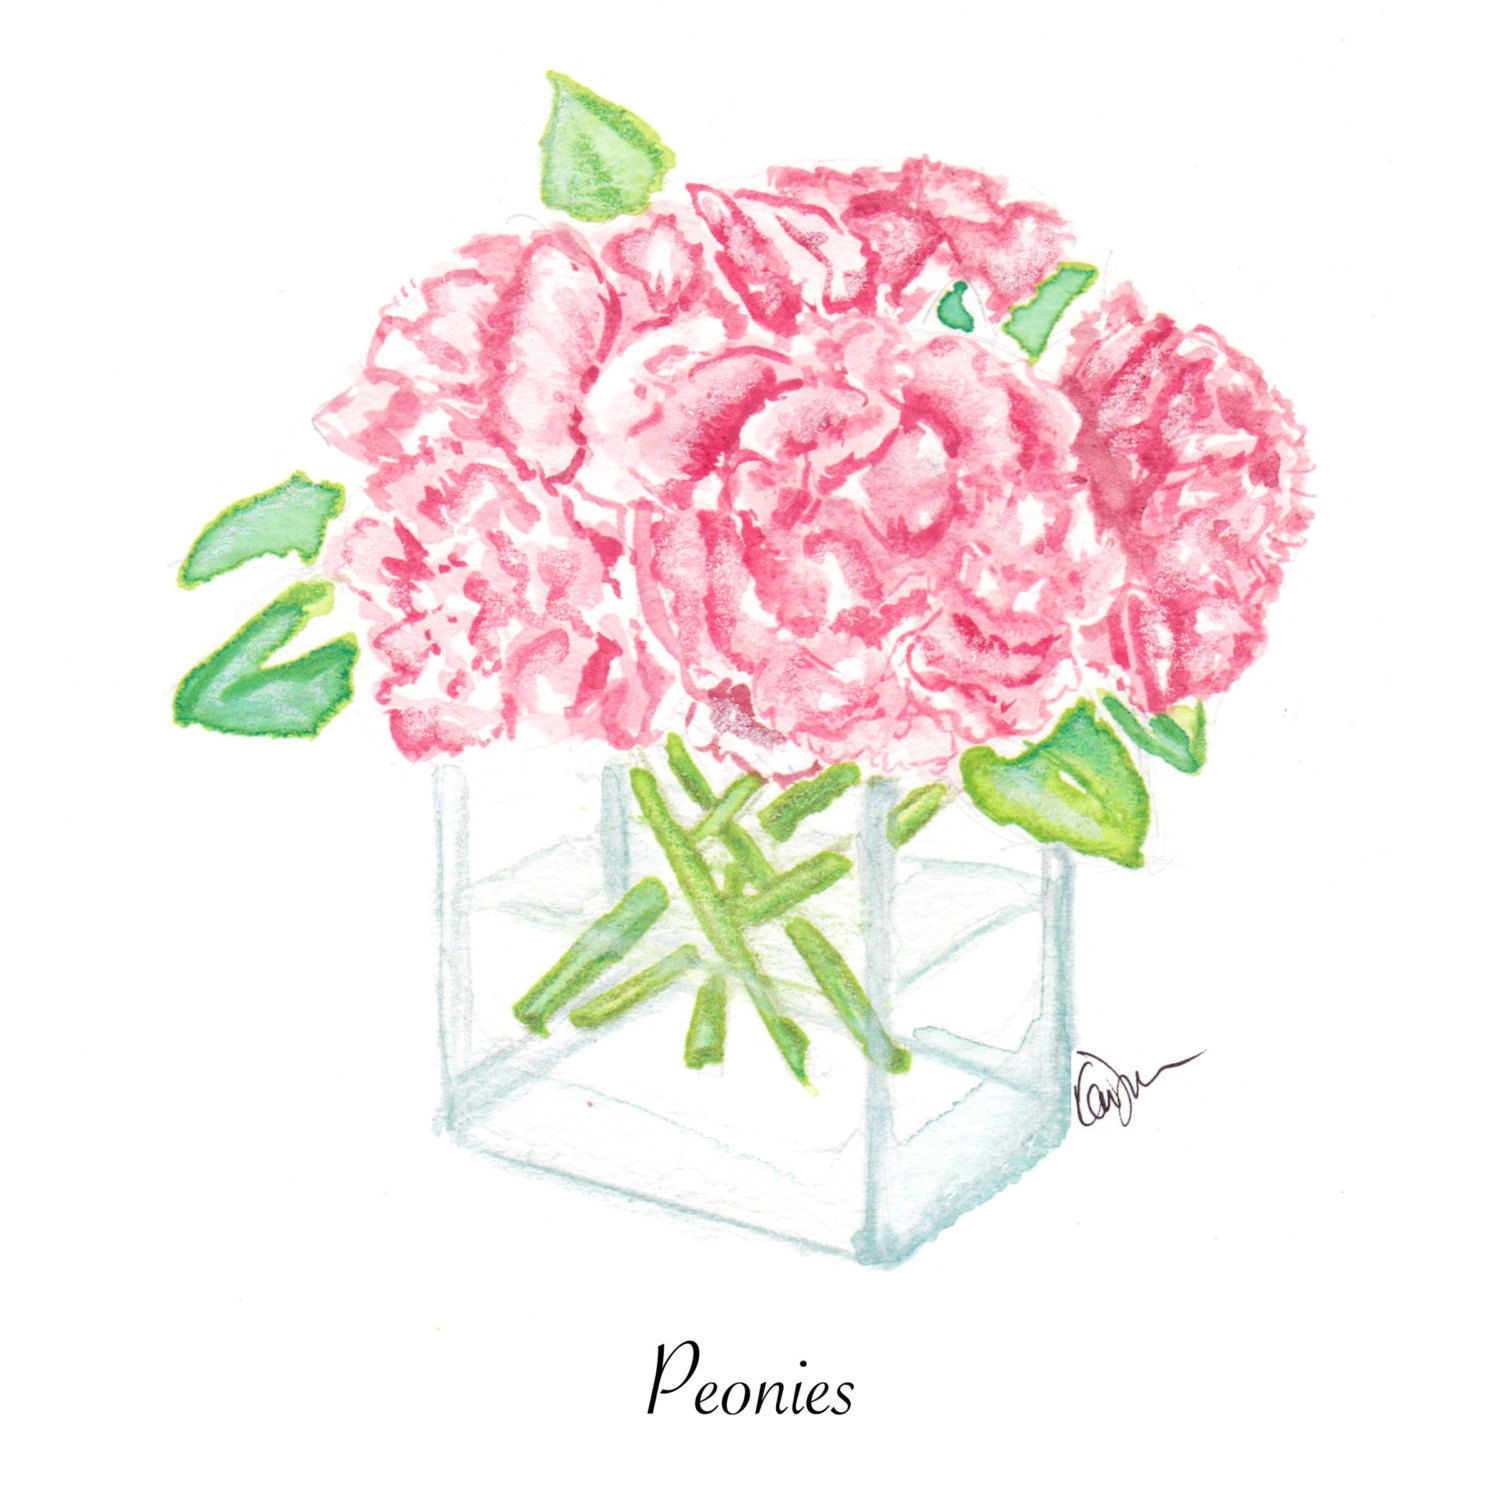 Drawn peony flower vase Pink a a Chic in